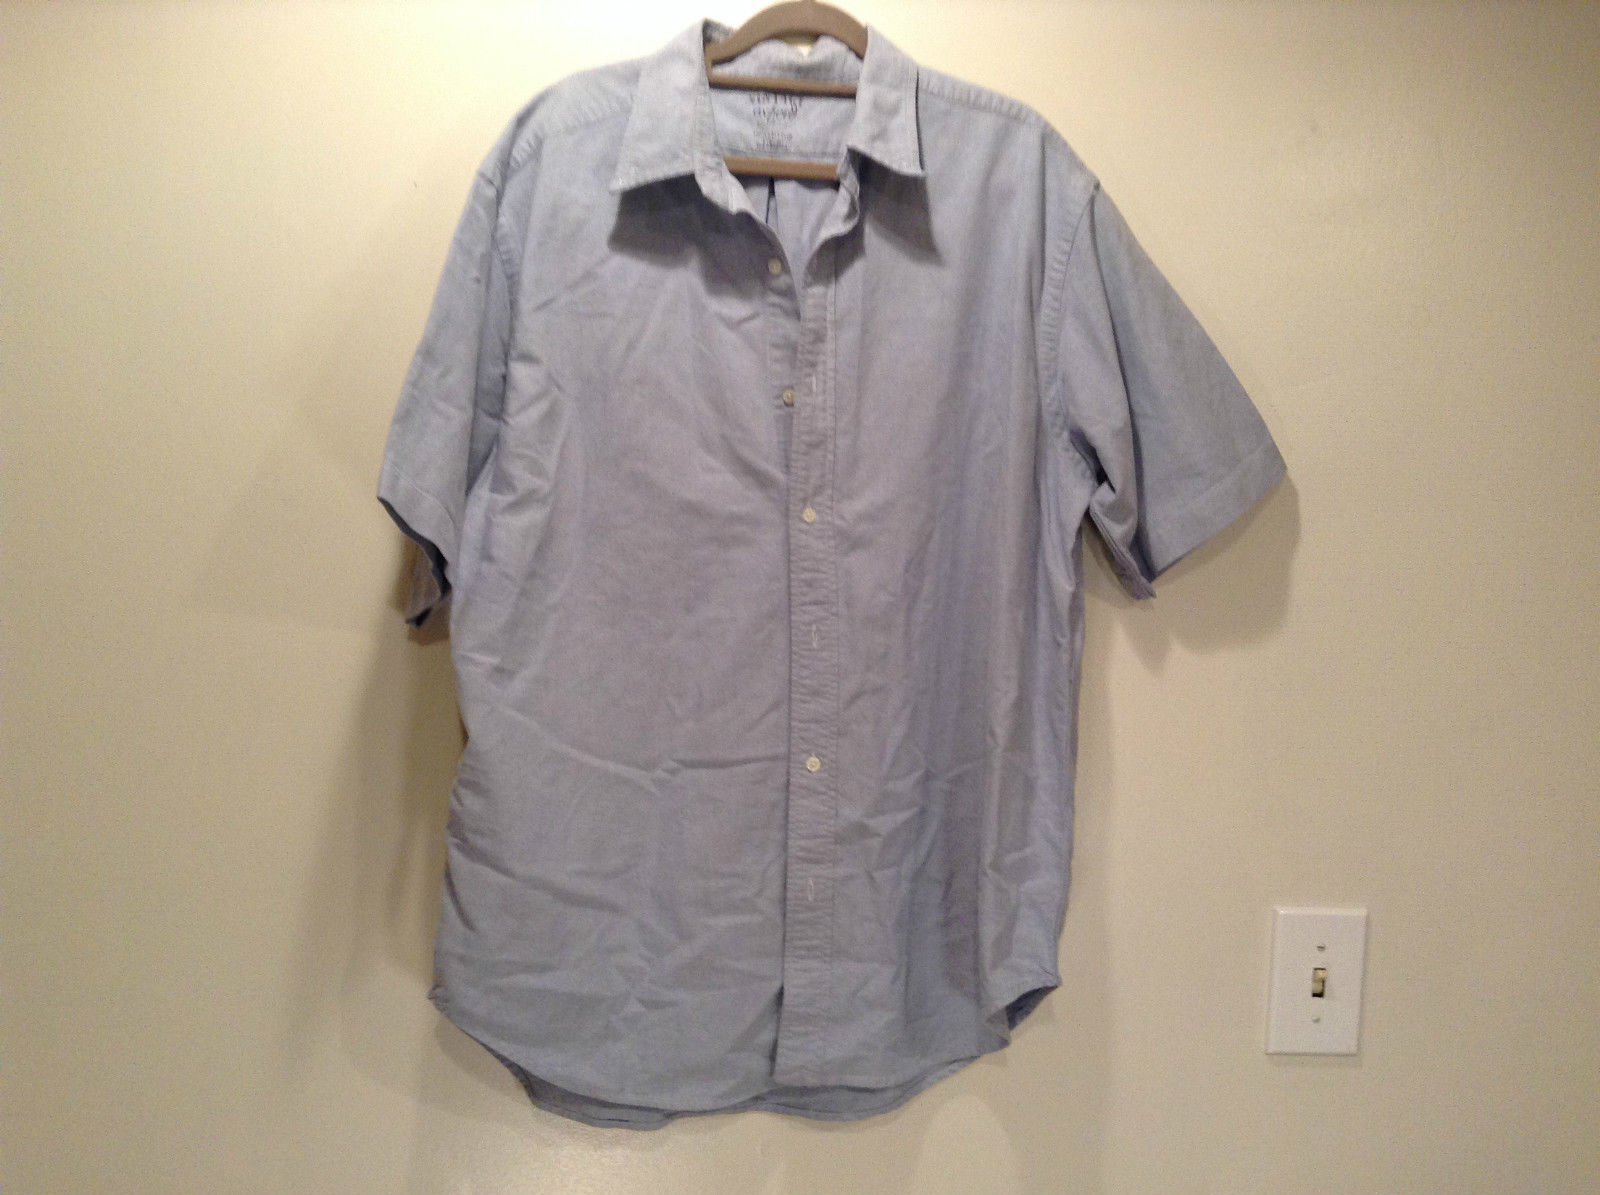 Vintage Oxford 100 Percent Cotton Size 42 to 44 Short Sleeve Light Blue Shirt